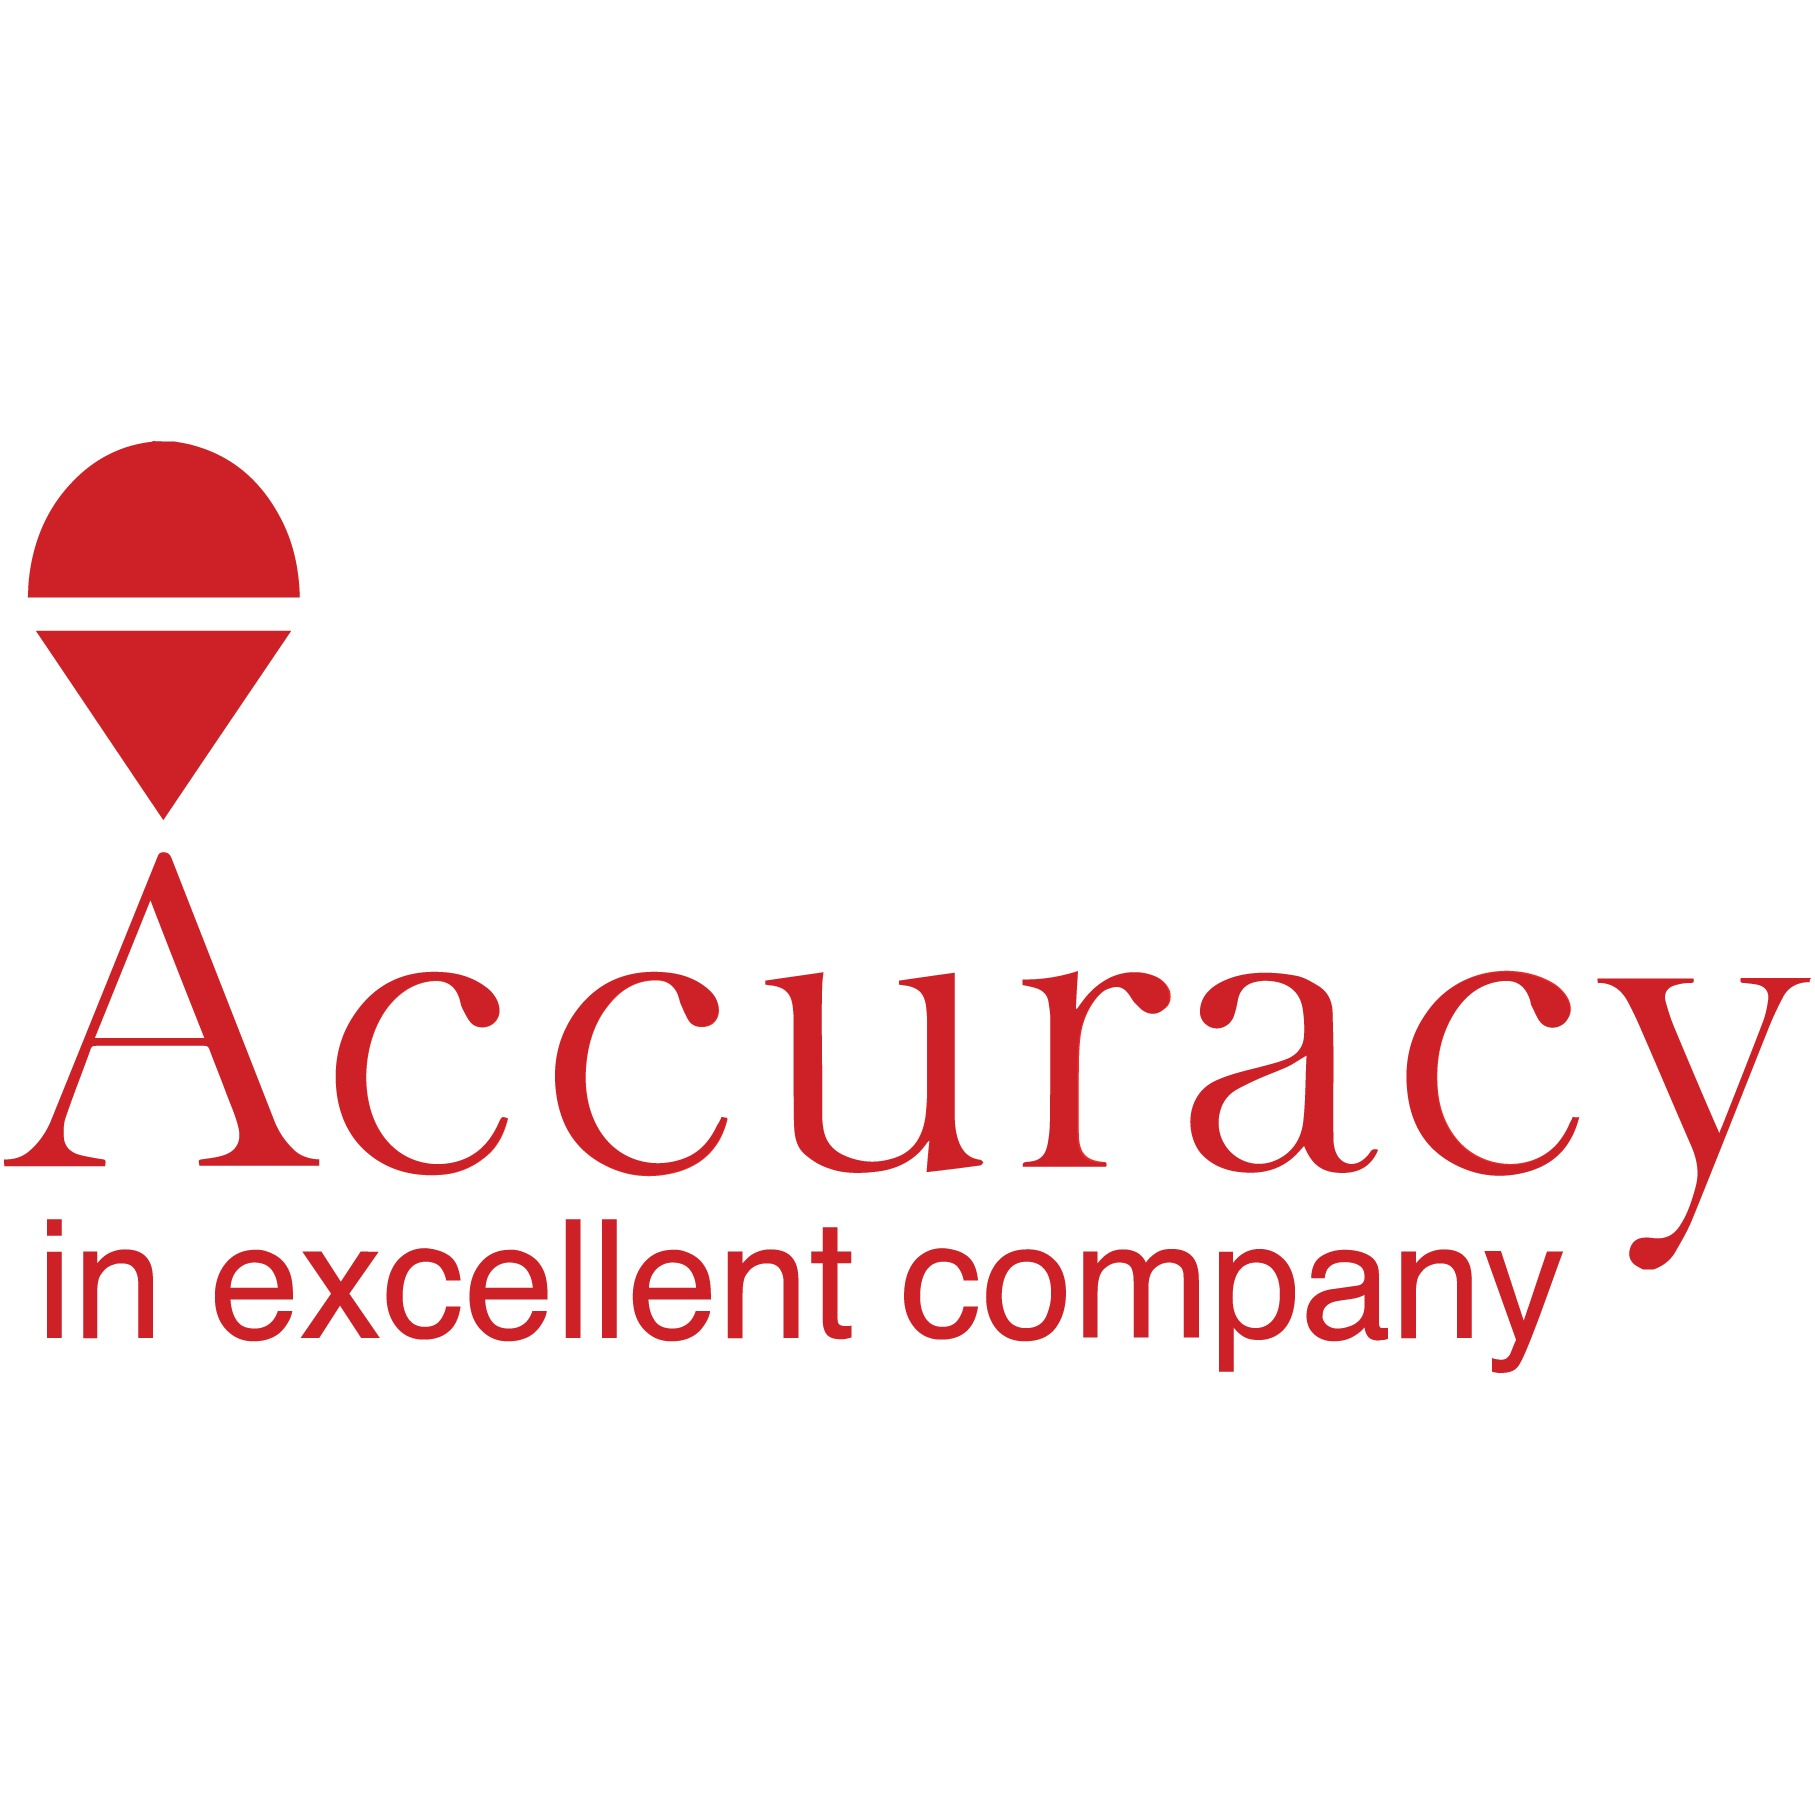 the Accuracy logo.